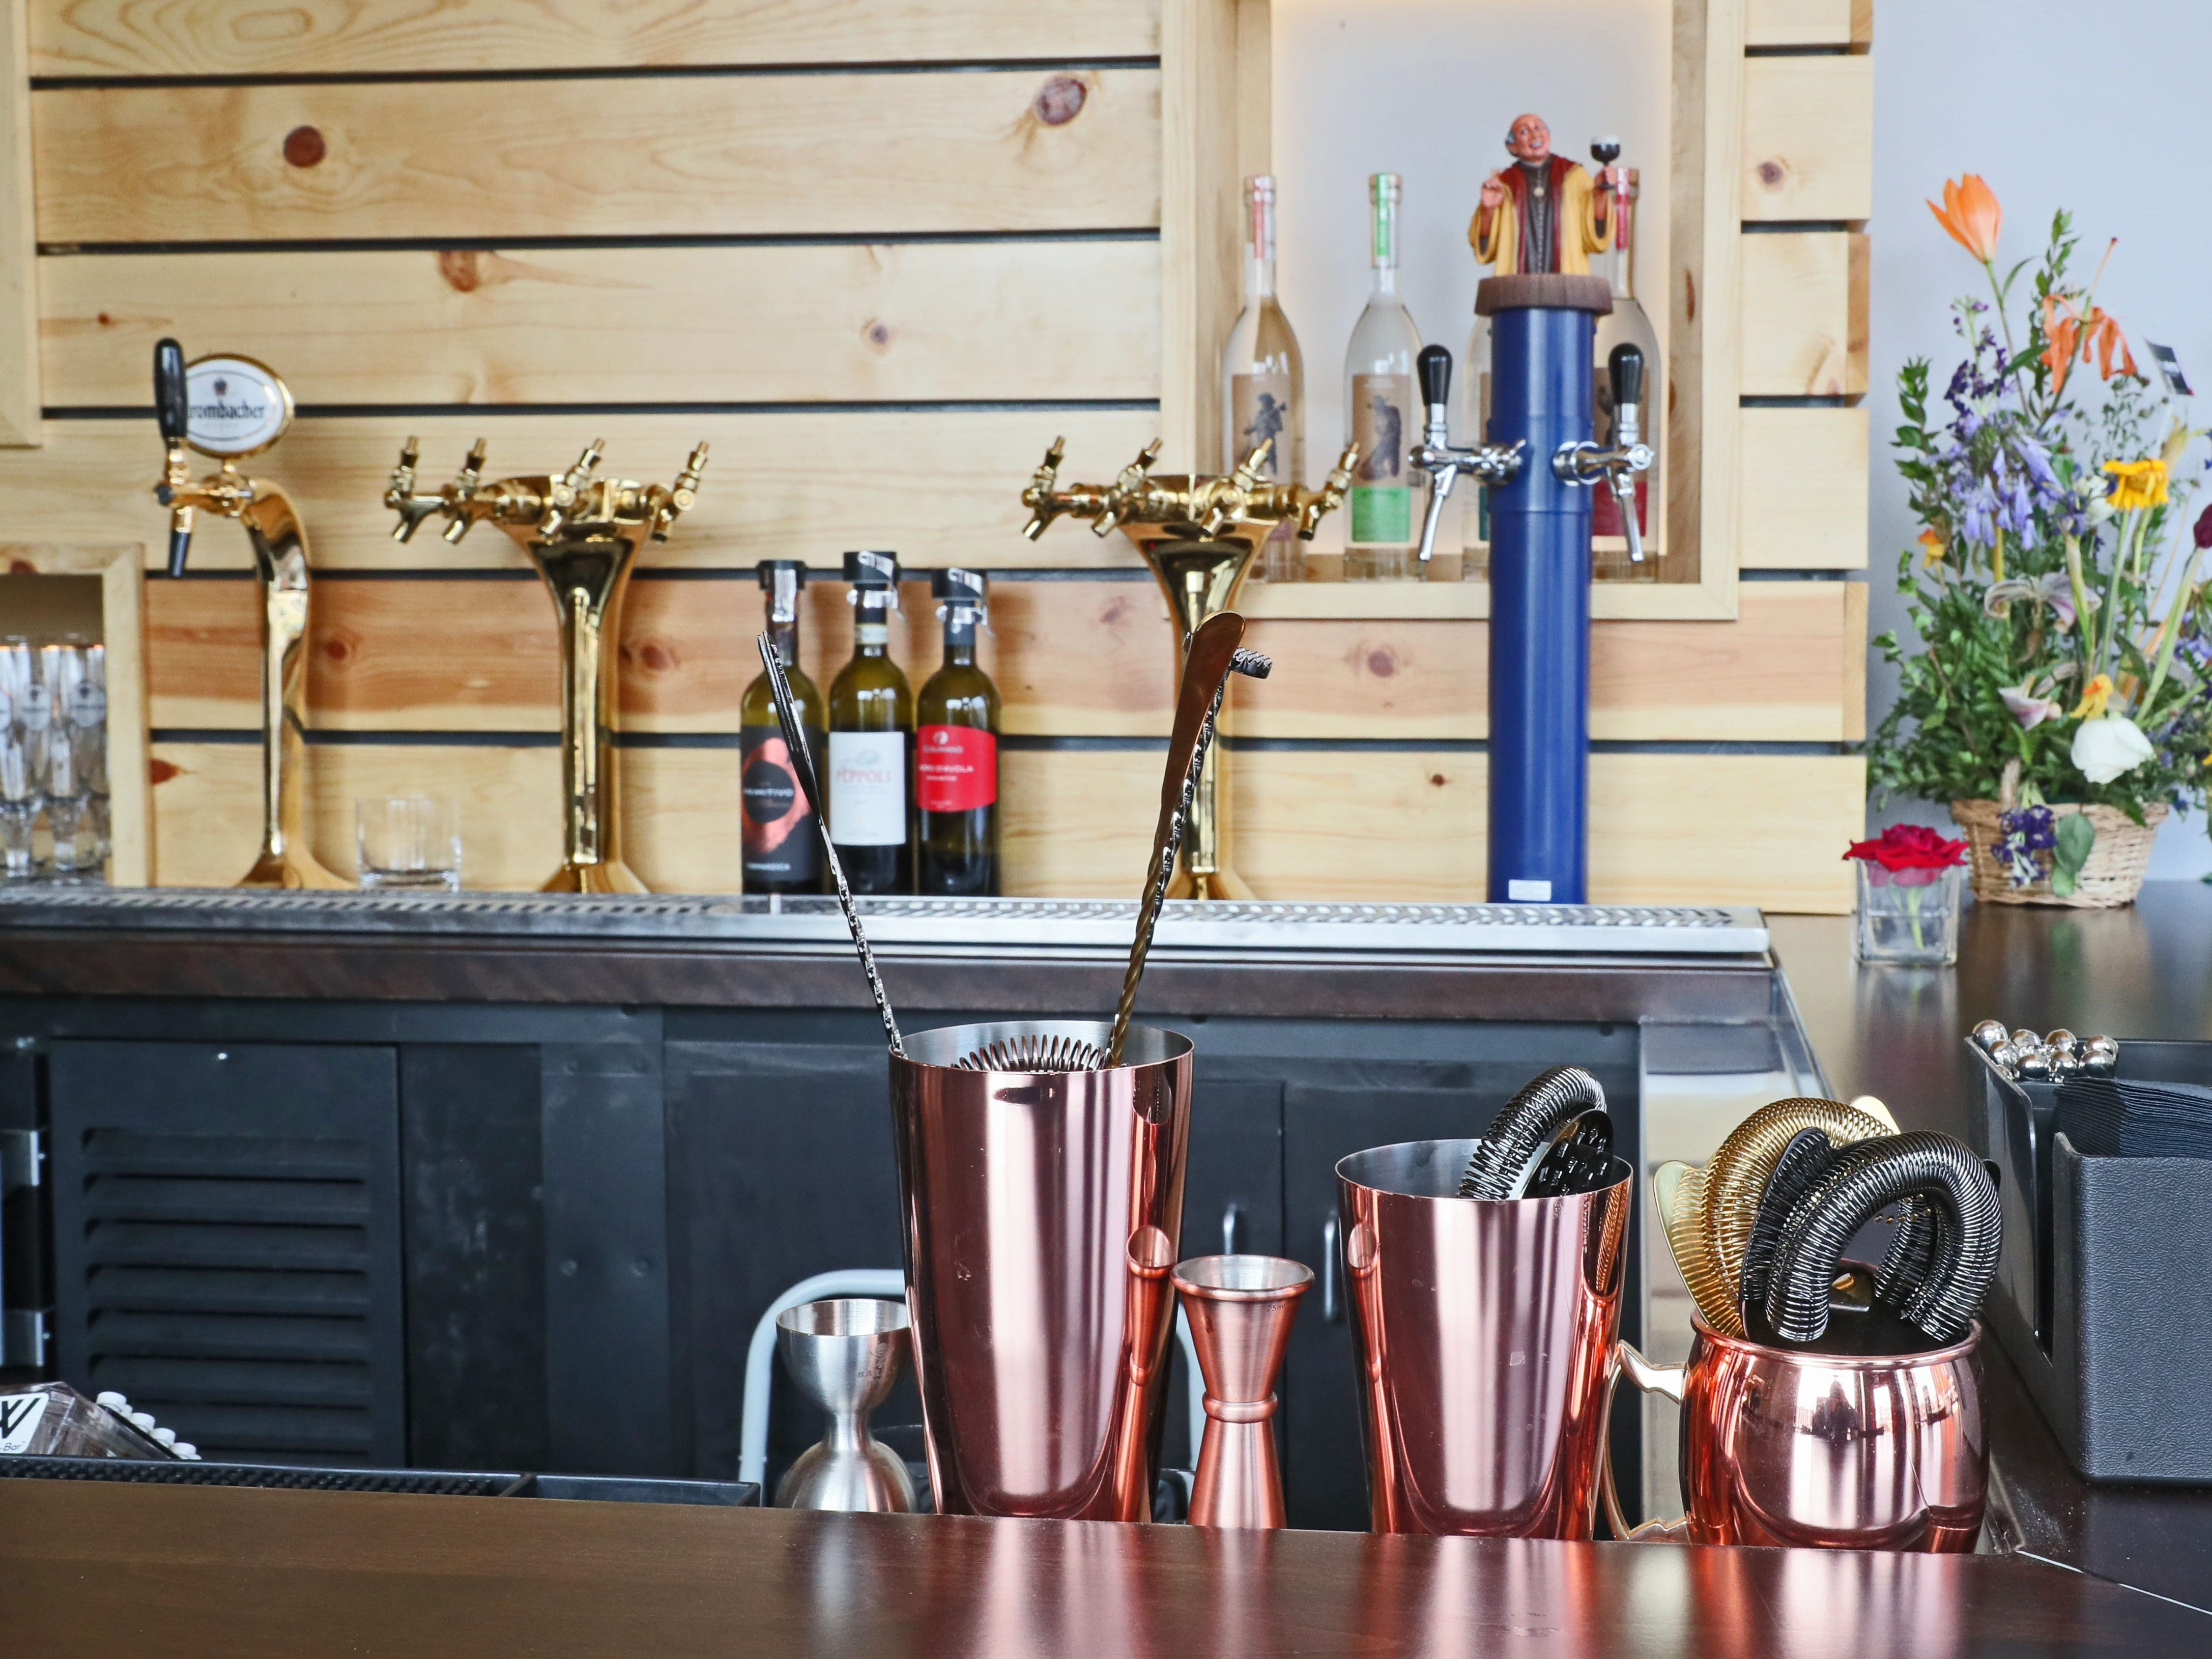 The bar is bright and colorful at  Baccanera Enoteca, a new wine bar at 1732 E. North Ave in Milwaukee.